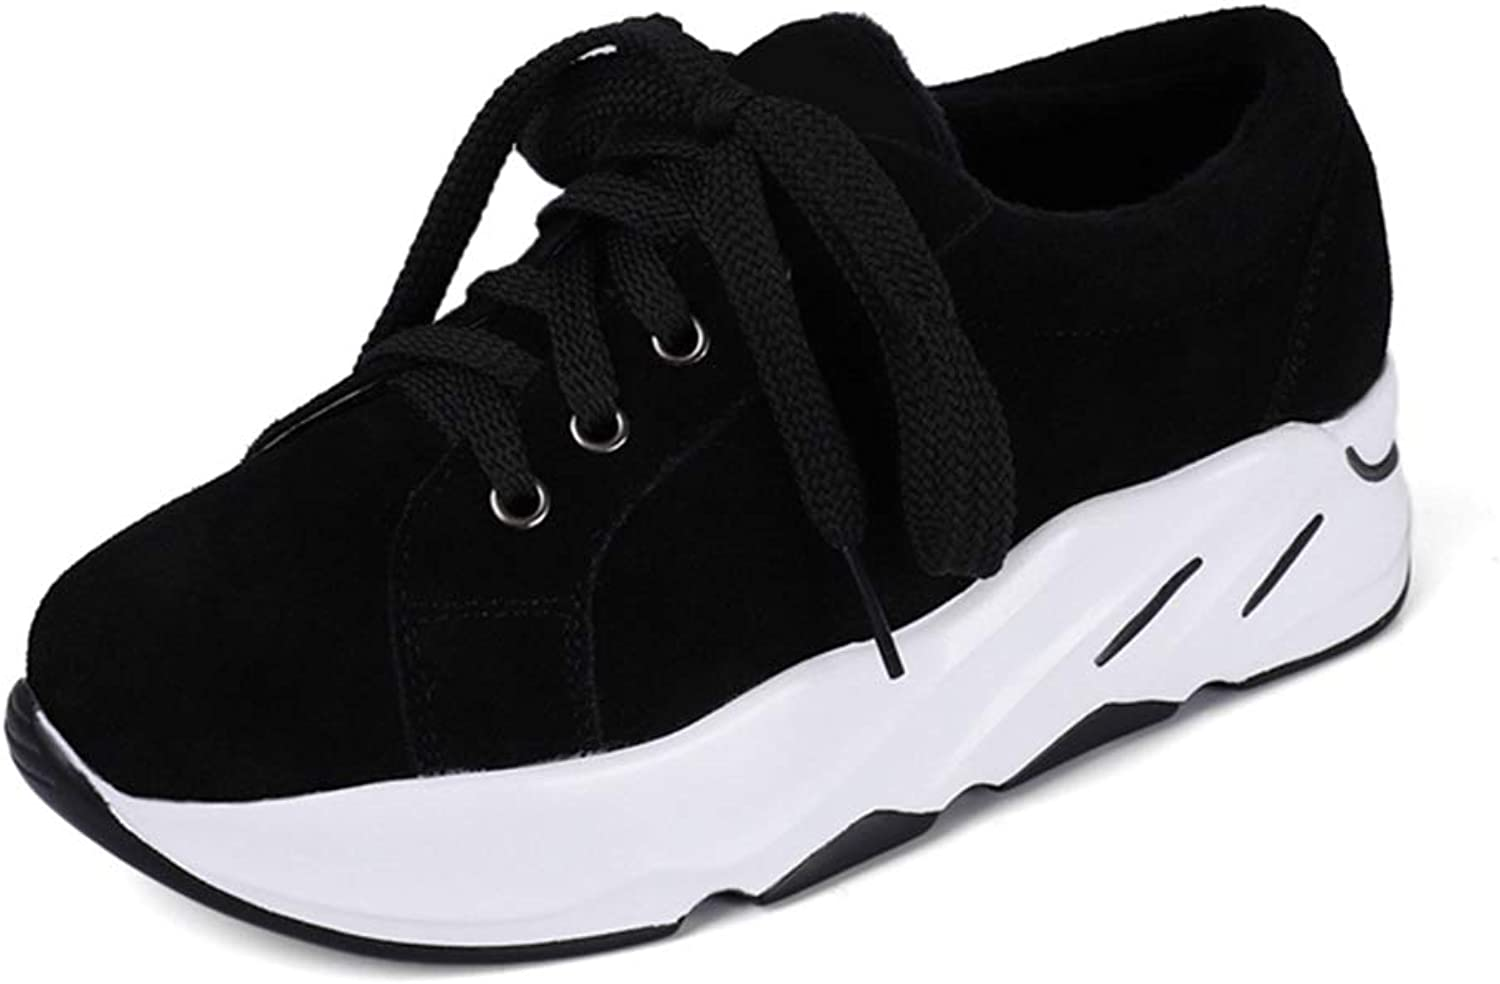 GIY Women Comfortable Platform Sneakers Breathable Low Top Casual Walking shoes